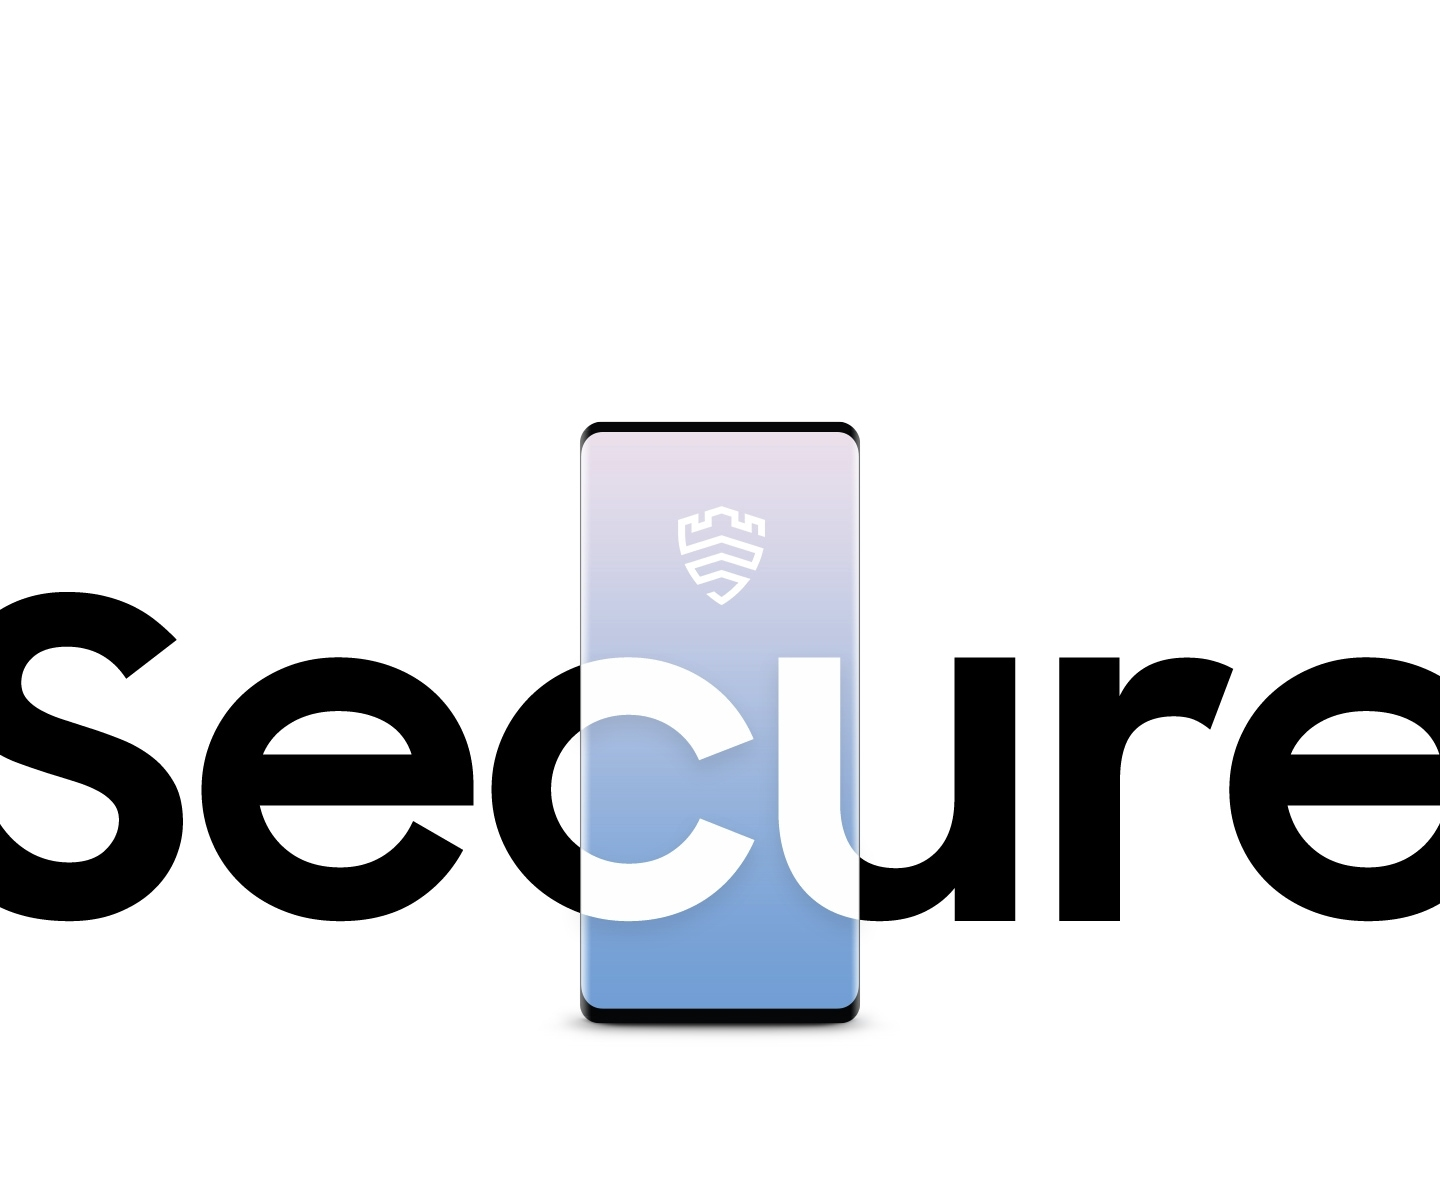 In big bold type the word 'Secure' appears on bottom screen. The letters 'C' and 'U' of  the word 'Secure' overlay a Galaxy S10 screen within the bottom center of our website. Above the two letters on the phone screen we see a security emblem.